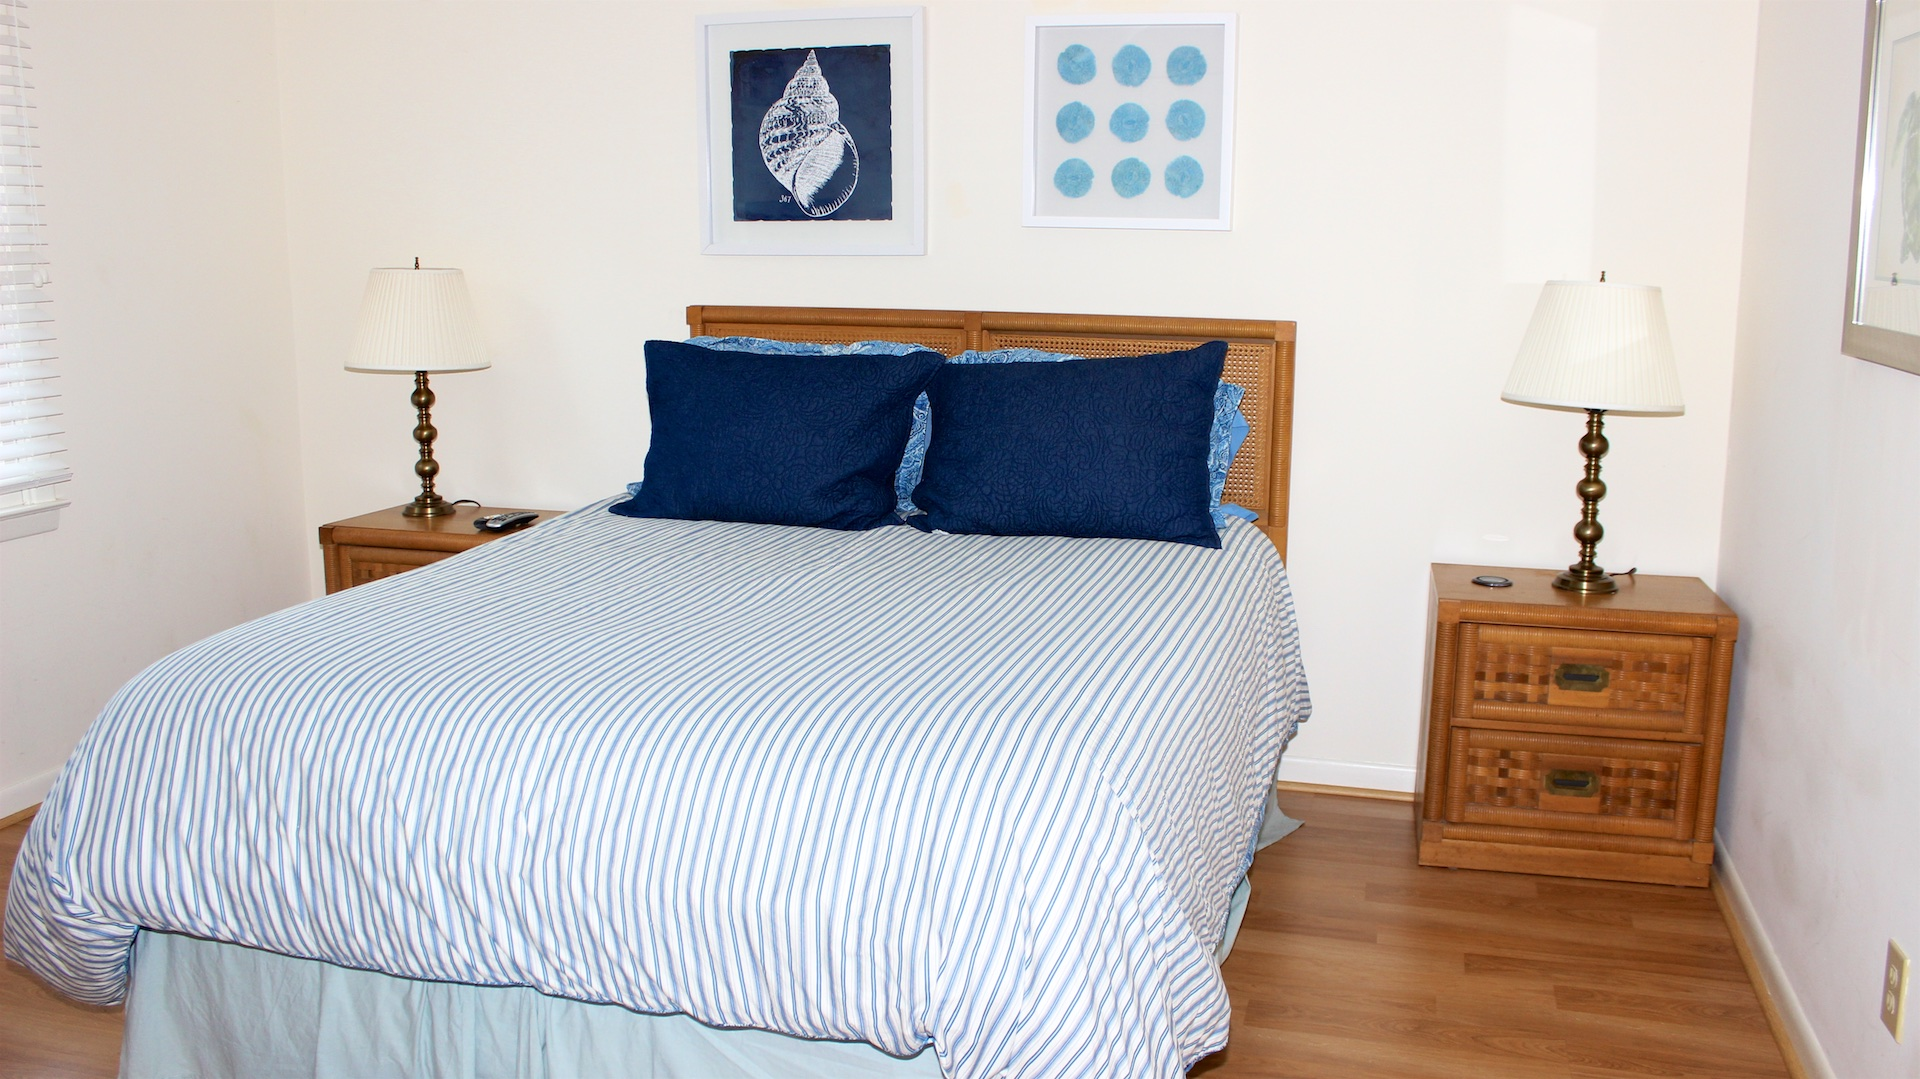 The master bedroom is on the first floor and has a queen bed.